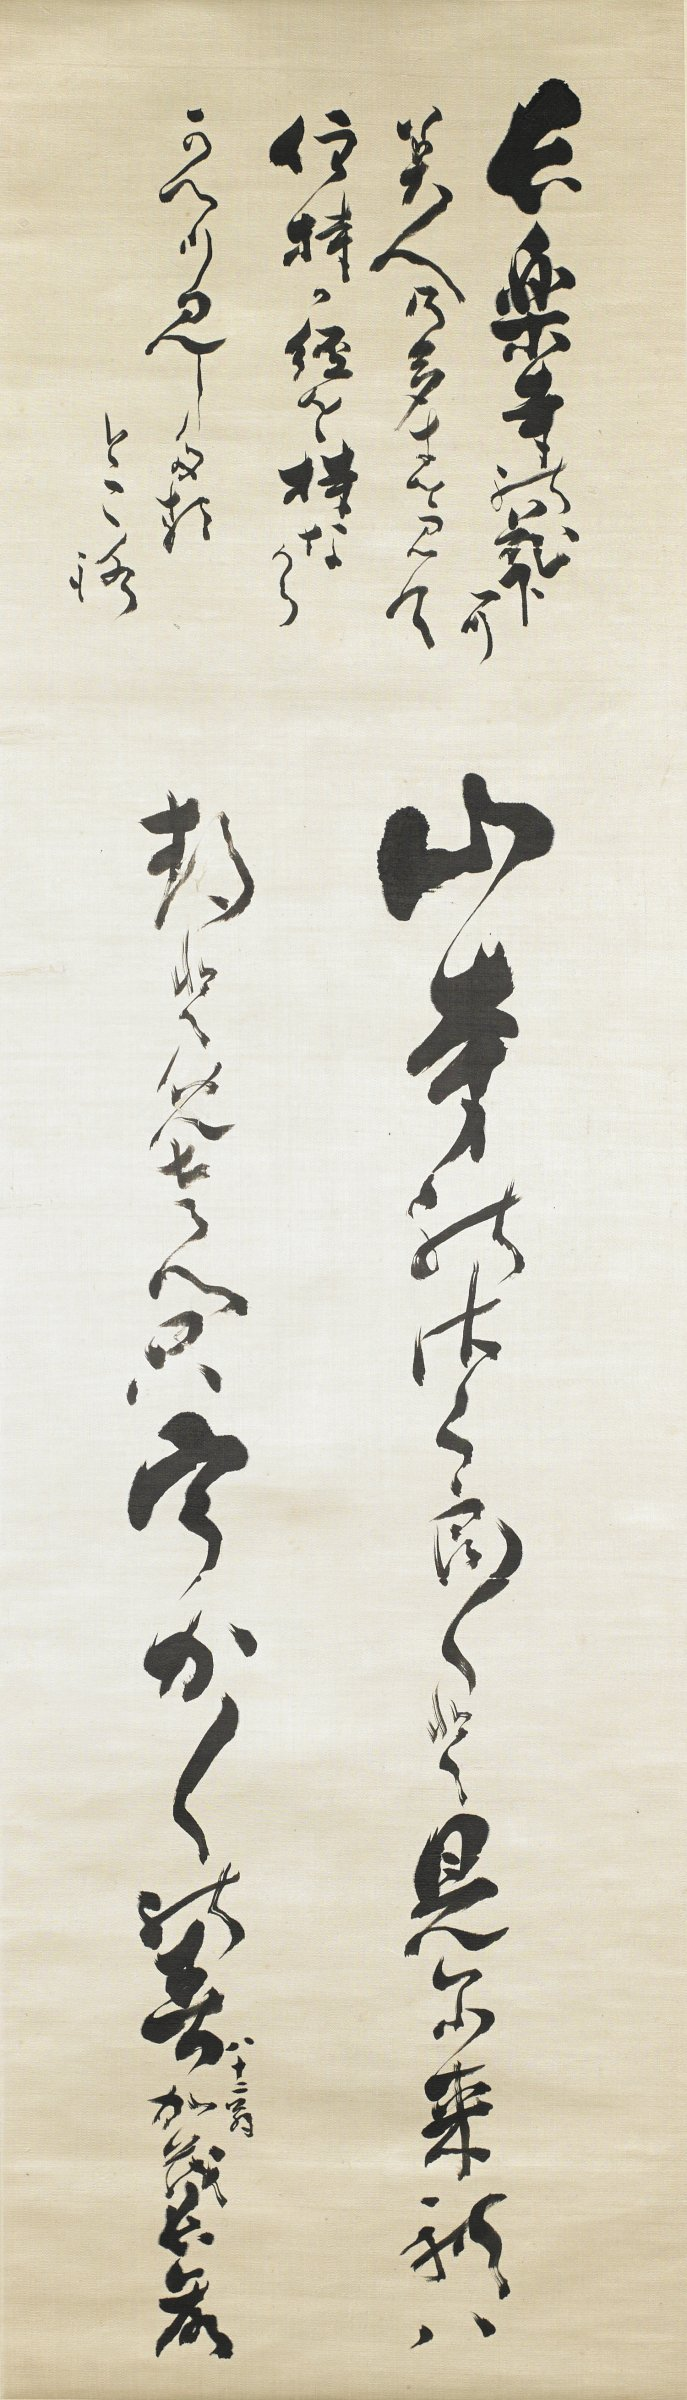 """Calligraphy Translation:At the mountain templewhen they come to view""""cherries, cherries"""" -it's merely a moment of joyin the idleness of springEighty-two-year old Kamo Suetaka"""